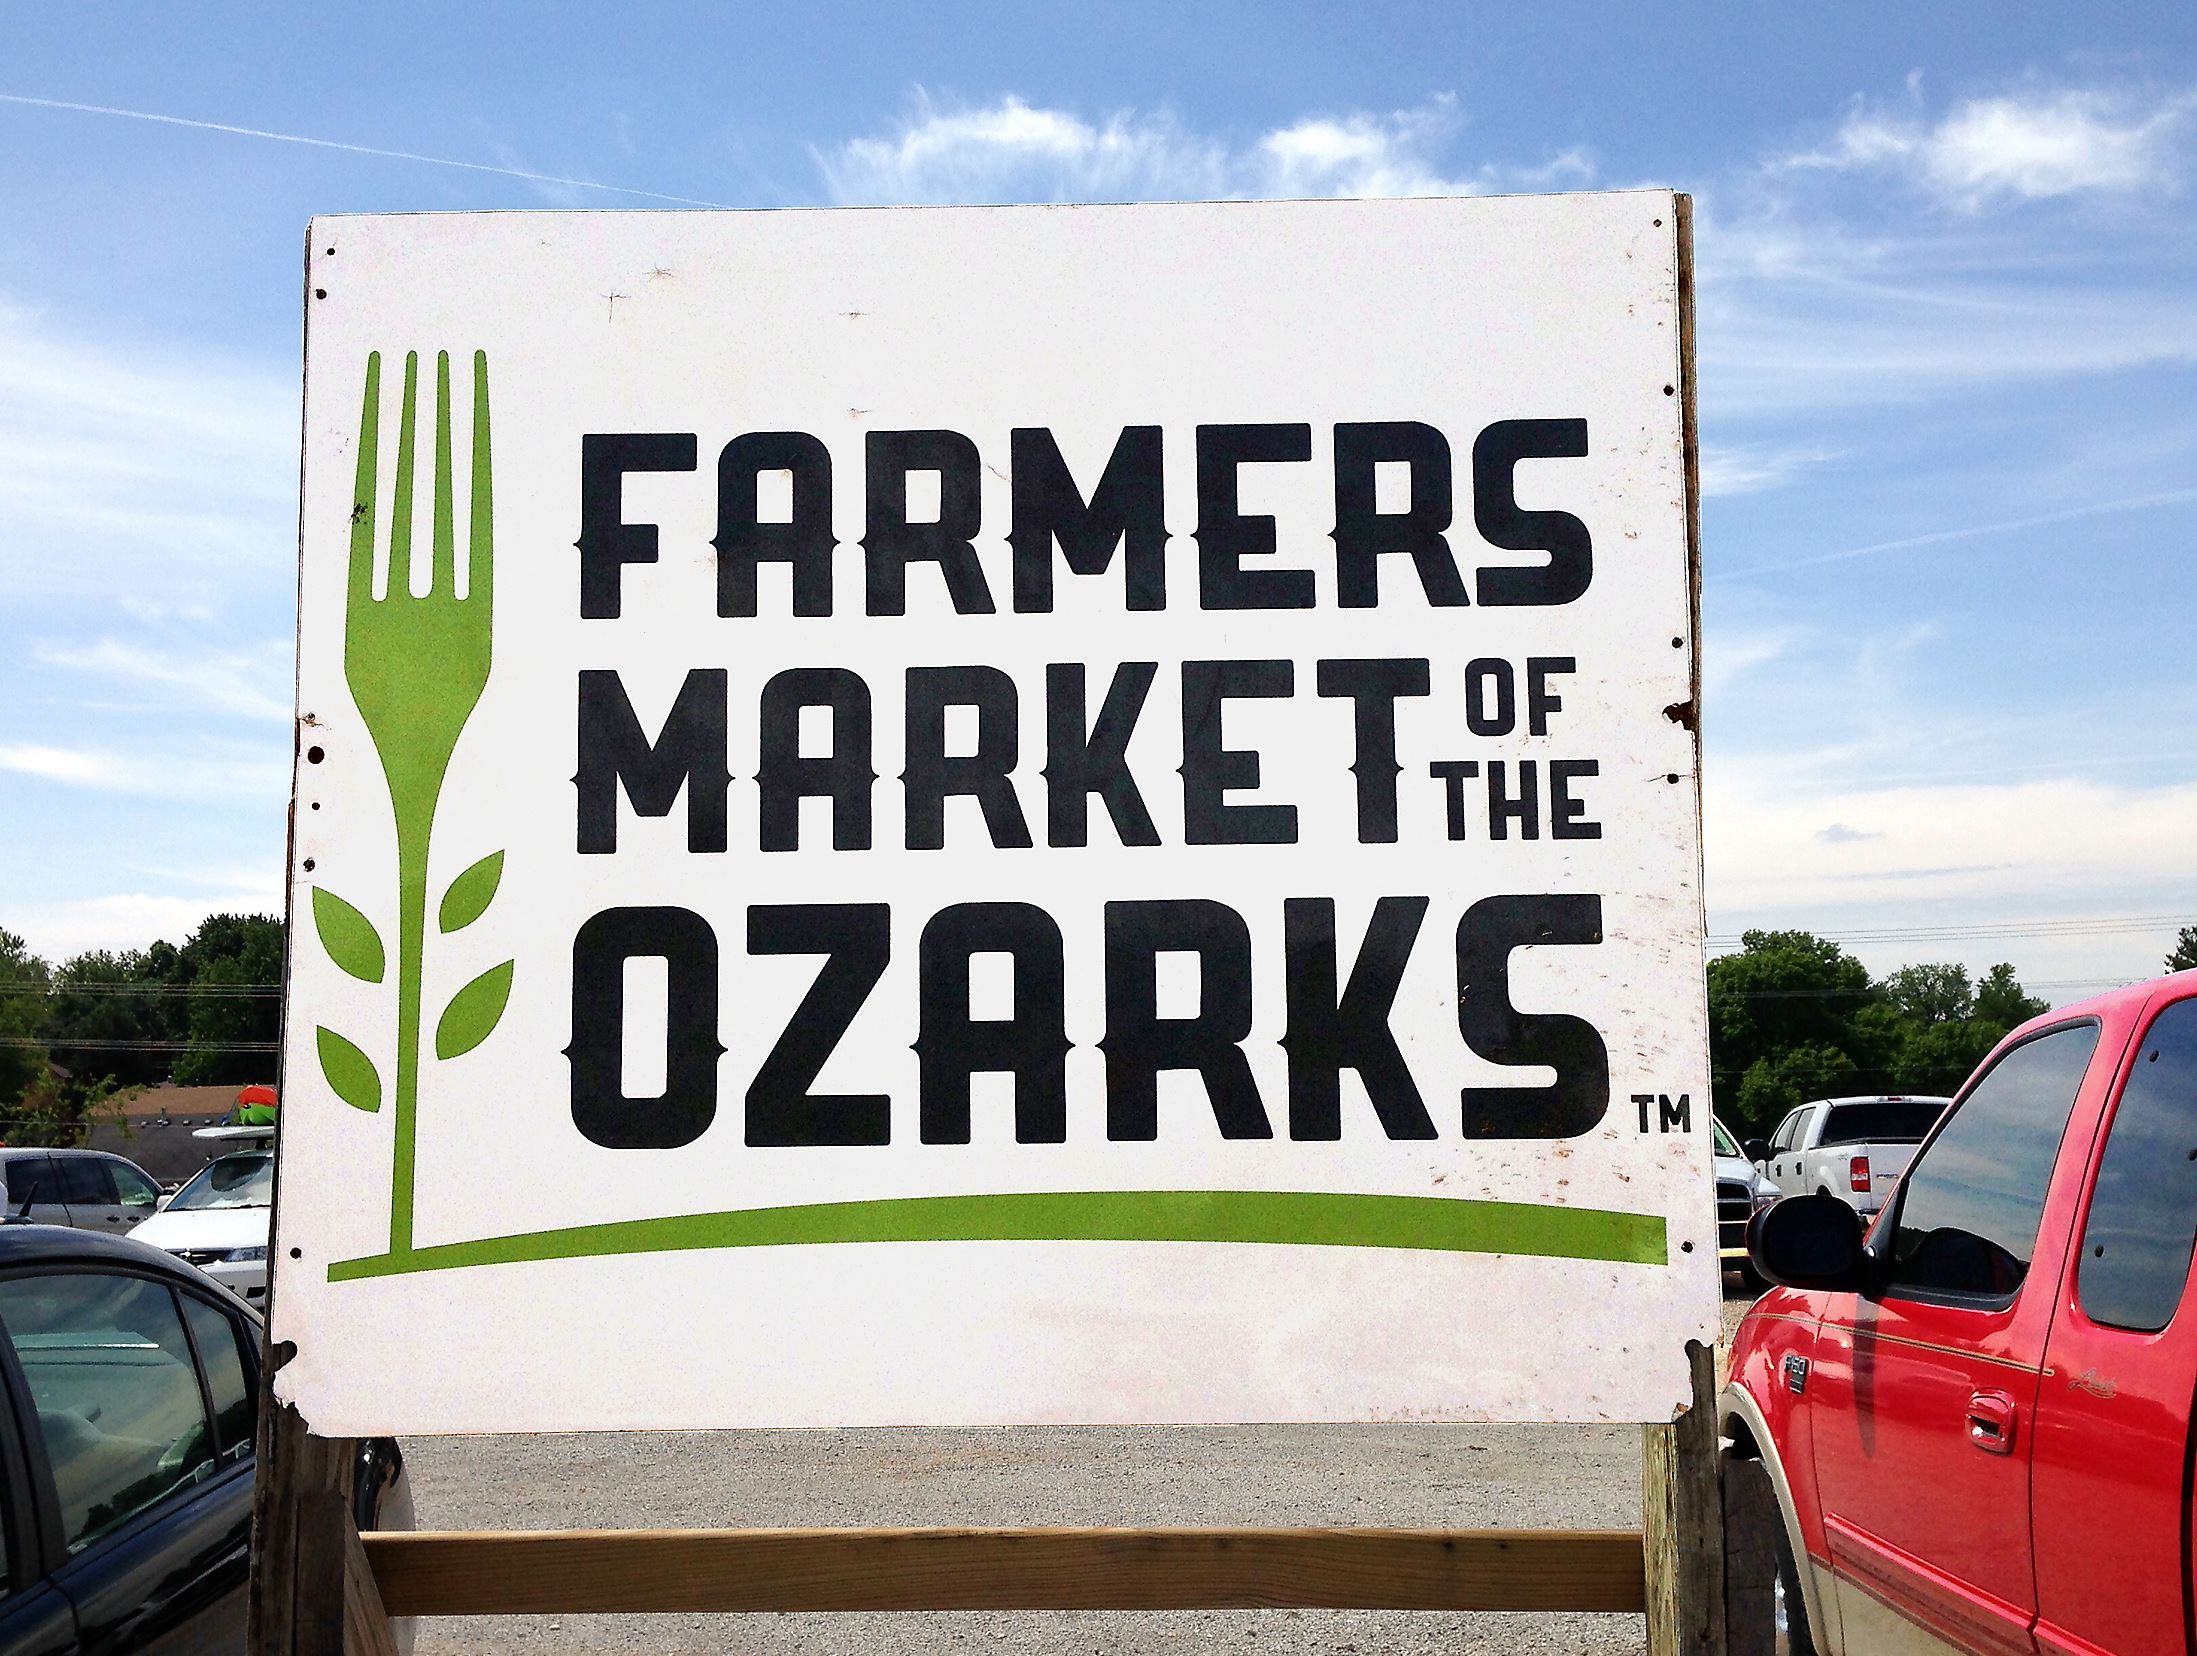 MarketSign Farmers Market of the Ozarks, Springfield, Missouri.